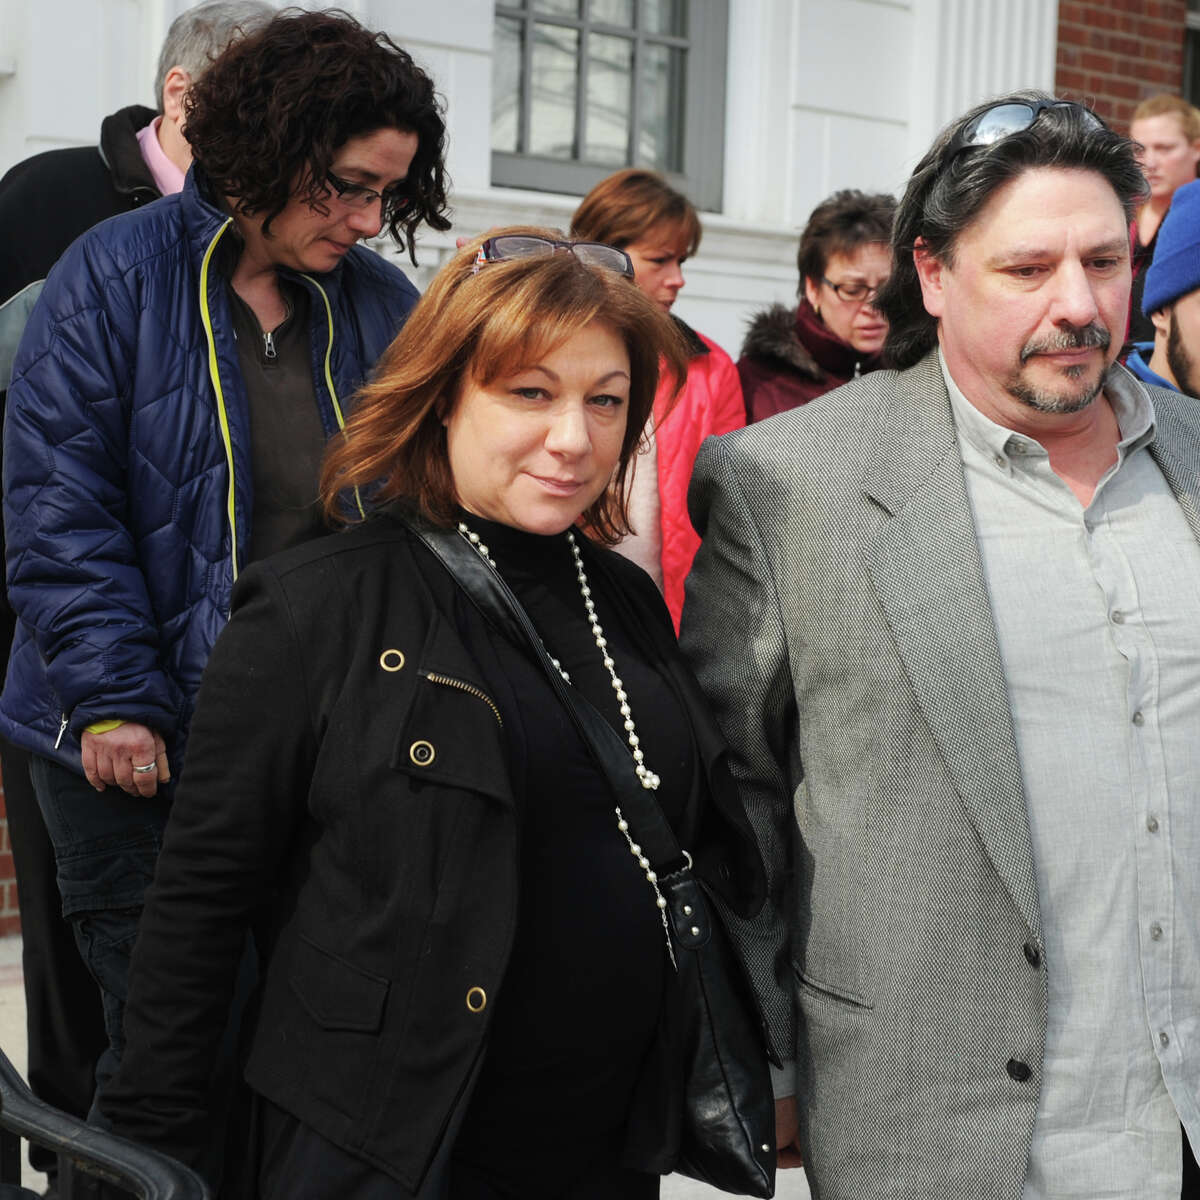 Maren Sanchez's mother, Donna Sanchez, leaves Milford Superior Court following an appearance by Christopher Plaskon, where he pleaded no contest in the 2014 murder of Marin, his classmate at Jonathan Law High School, in Milford.